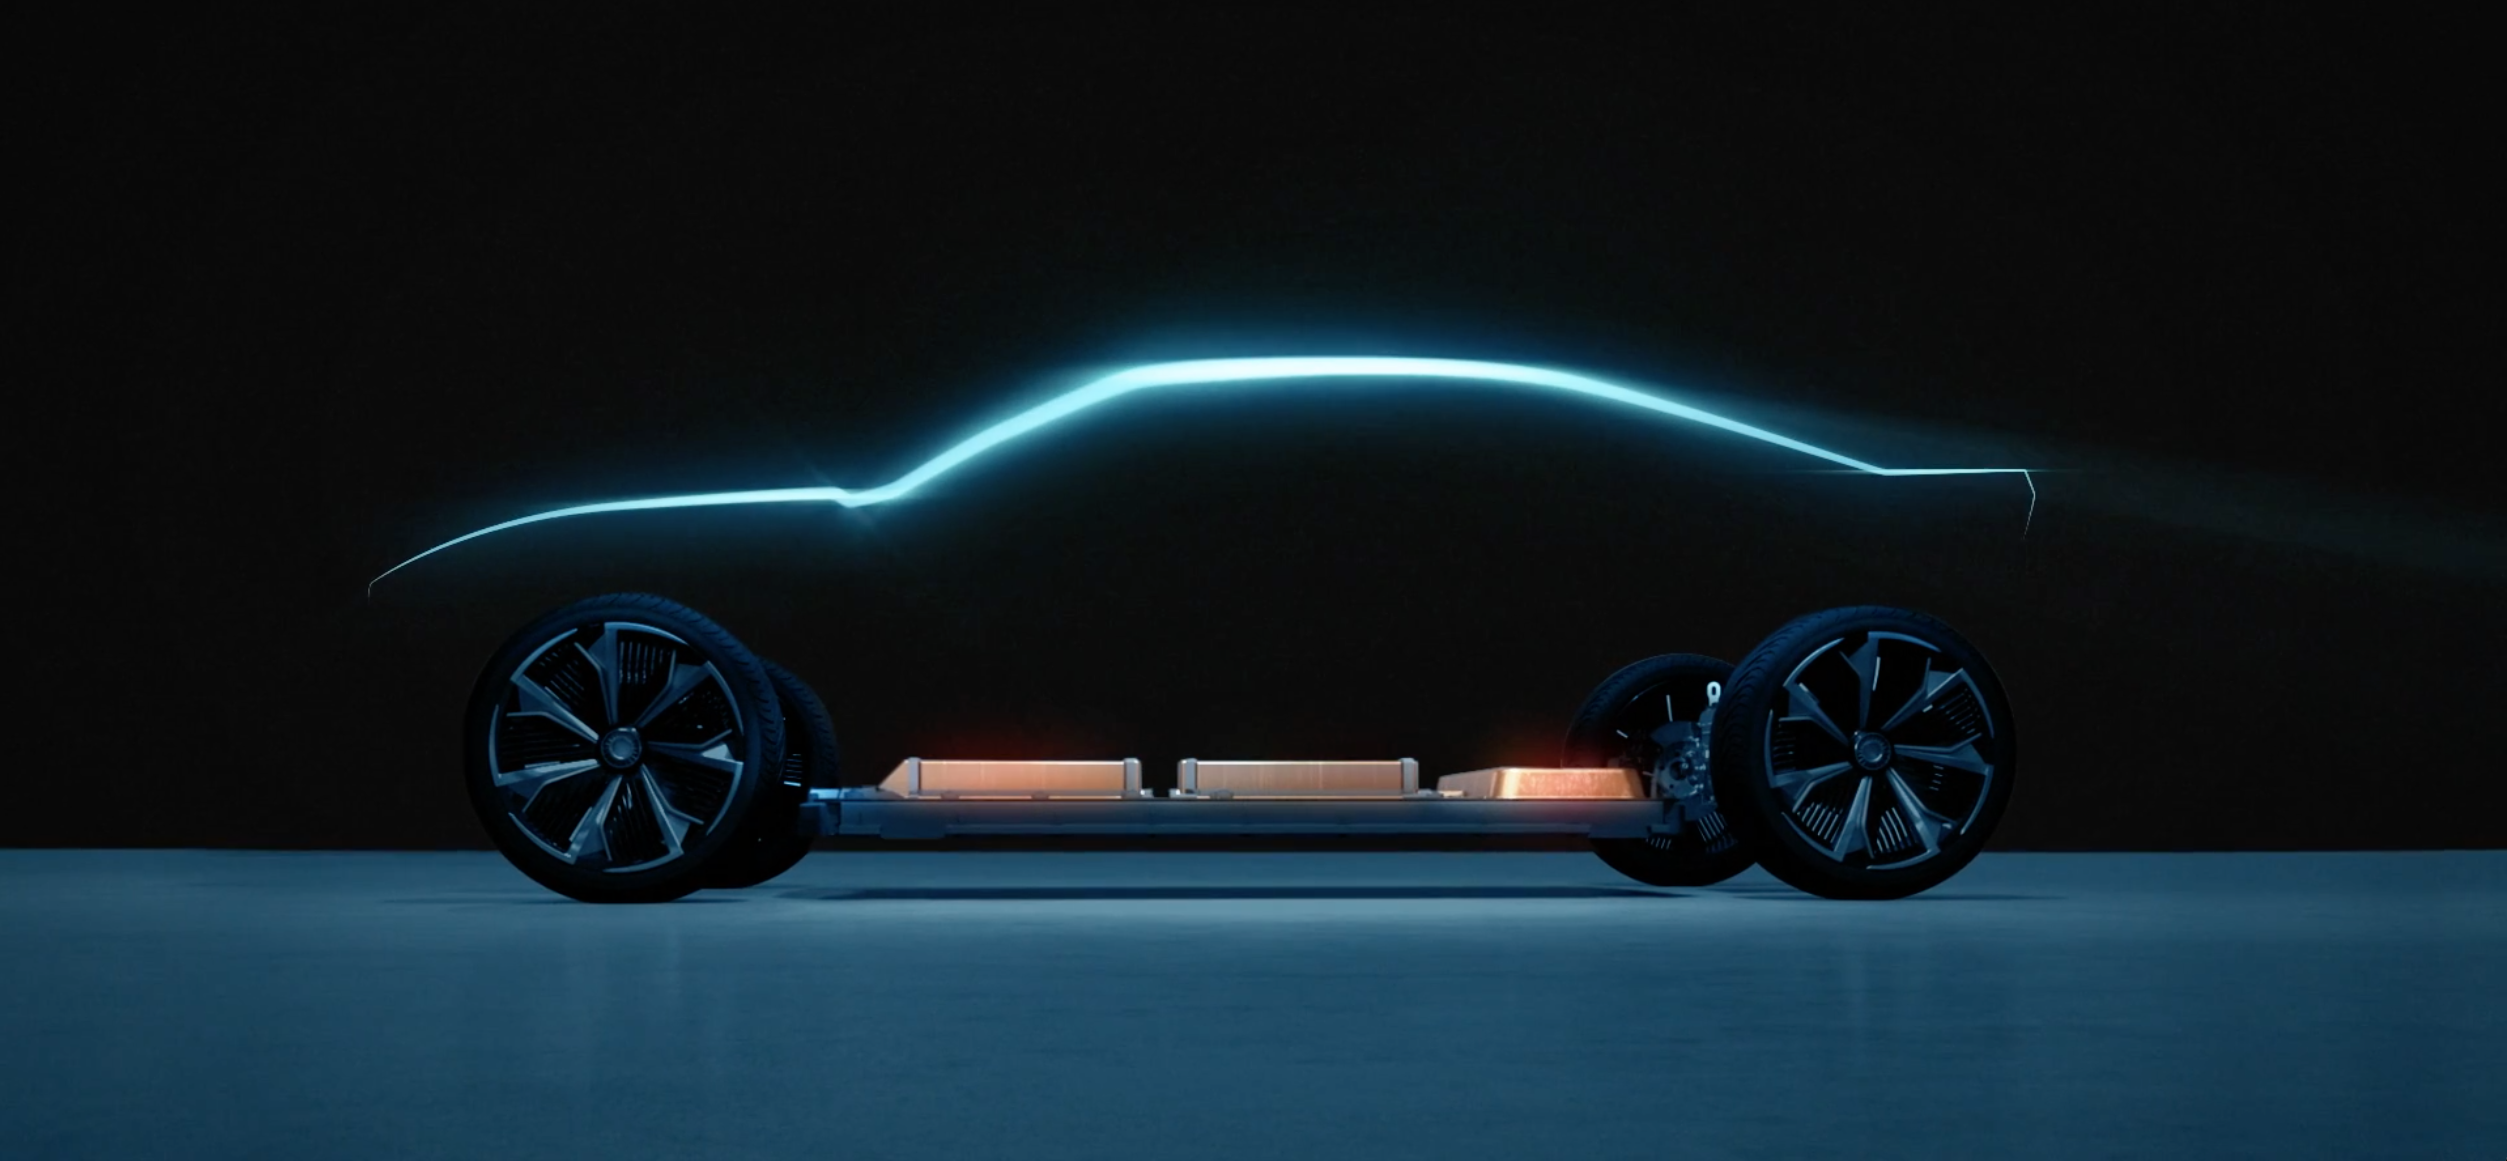 Is A Chevy Camaro Electric Car In The Works Gm Ev Teased